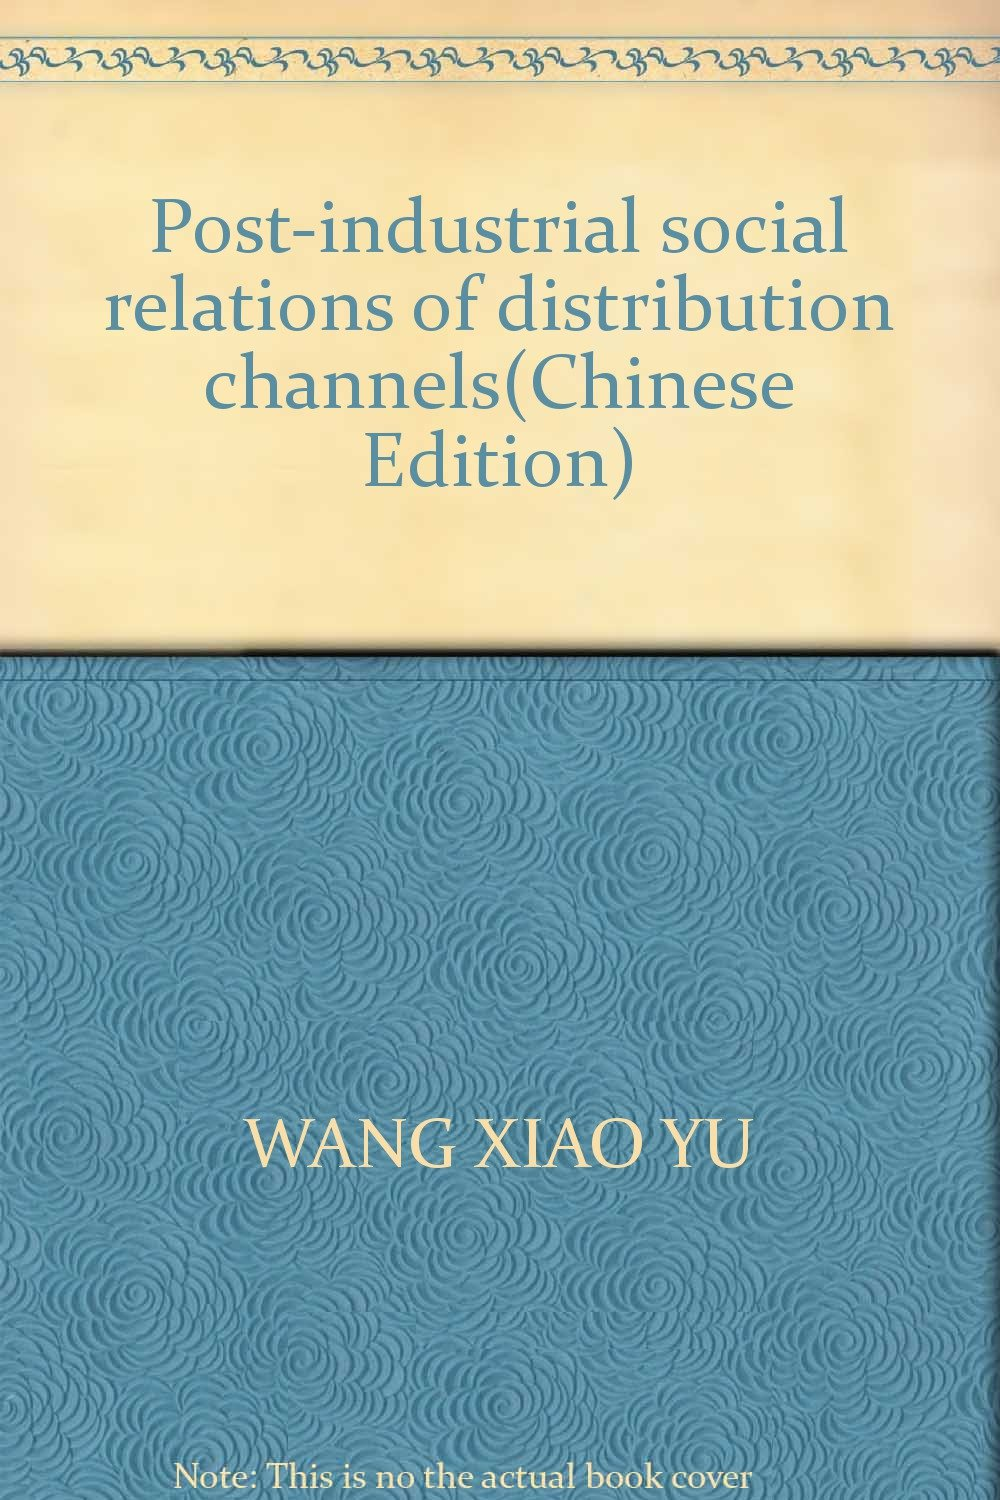 Post-industrial social relations of distribution channels ebook